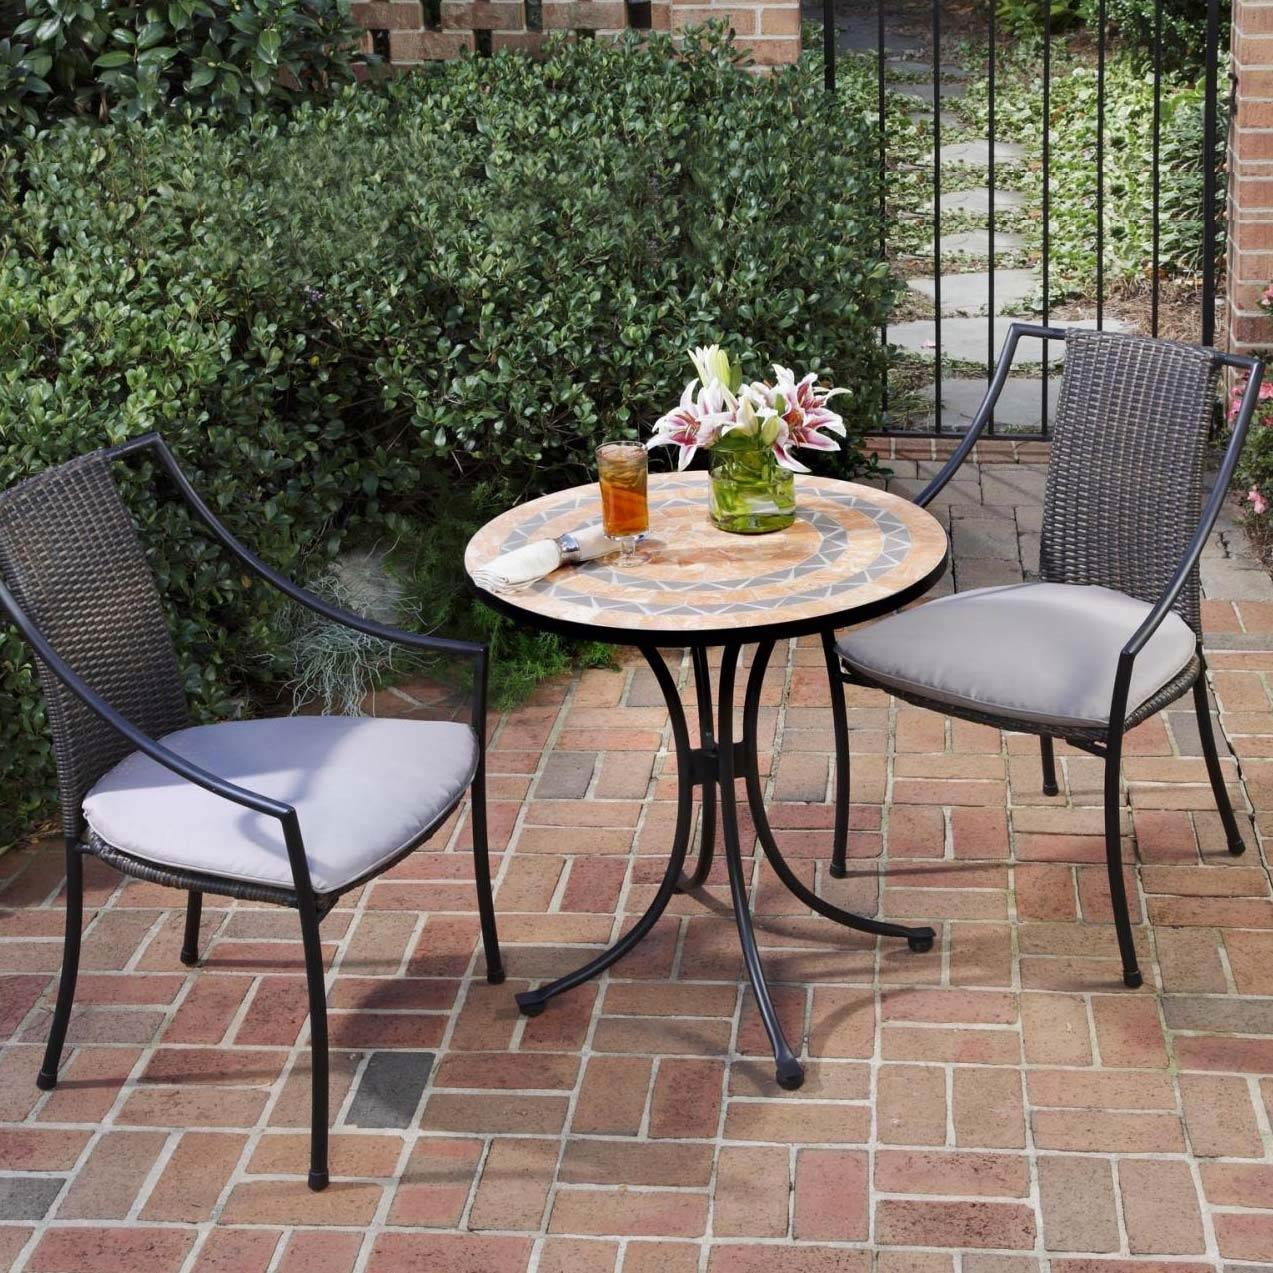 Home Styles Laguna 2-person Resin Wicker Patio Bistro Set With Mosaic Table Top - Black at Sears.com